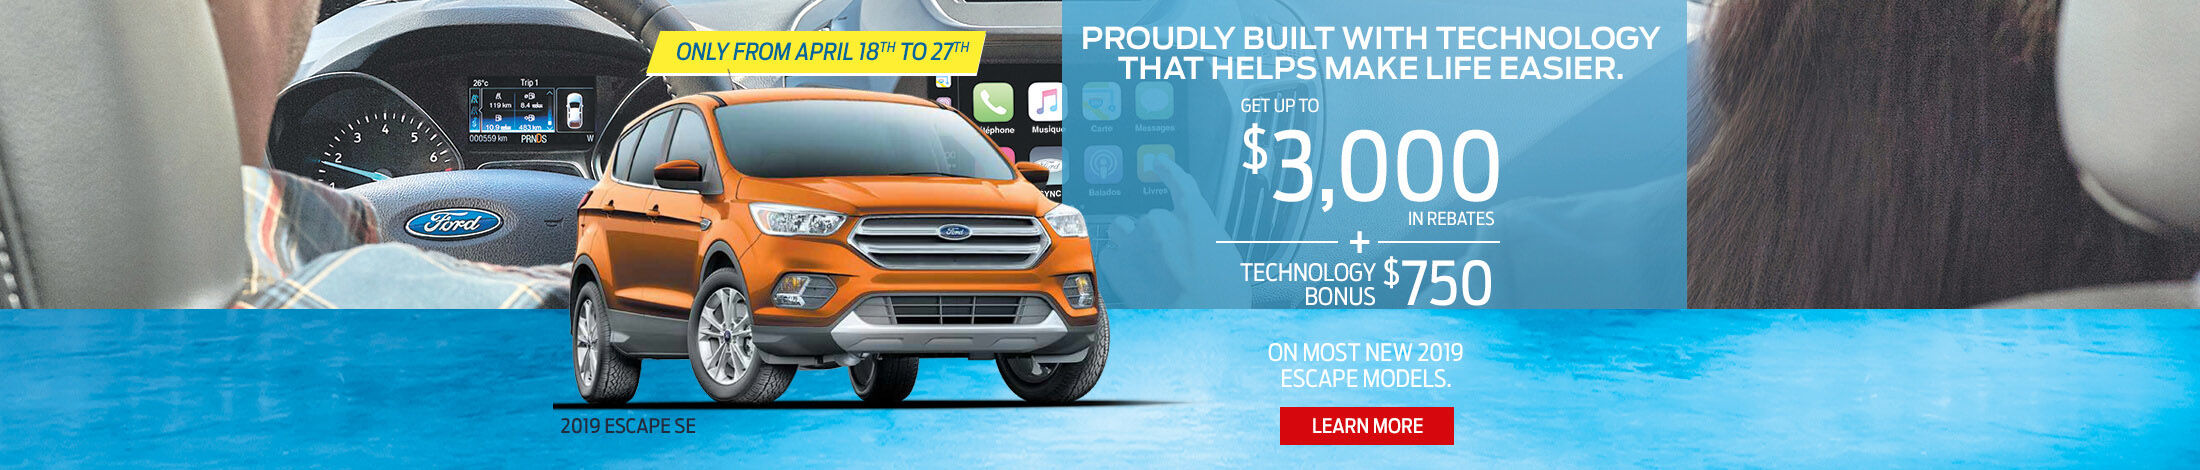 2019 Escape Ford offer